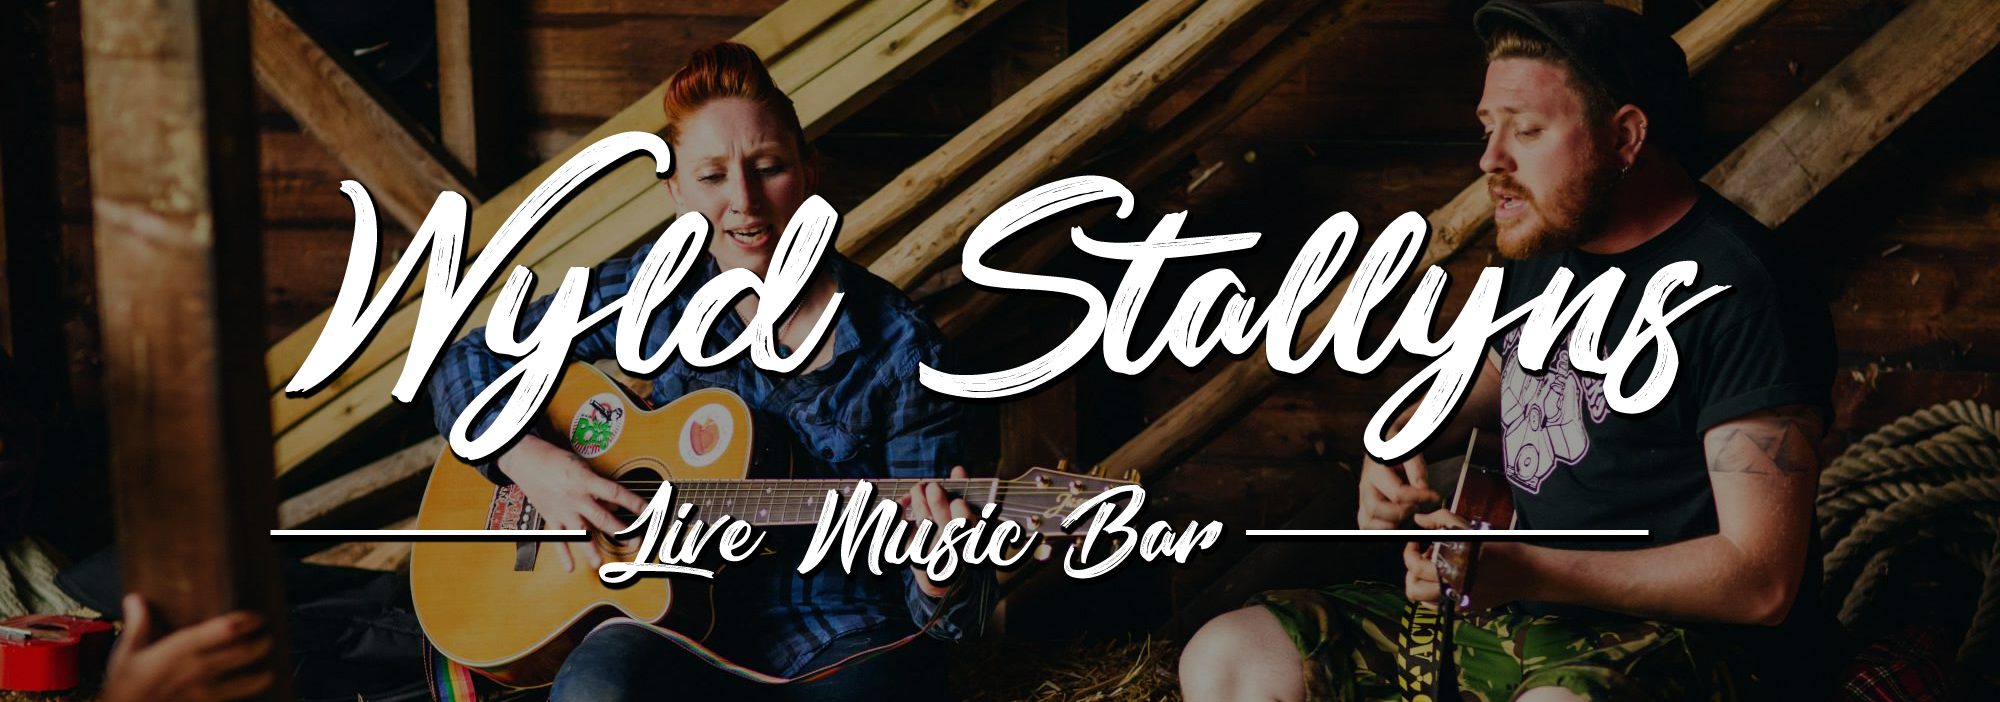 Wyld Stallyns - Live Music Bar